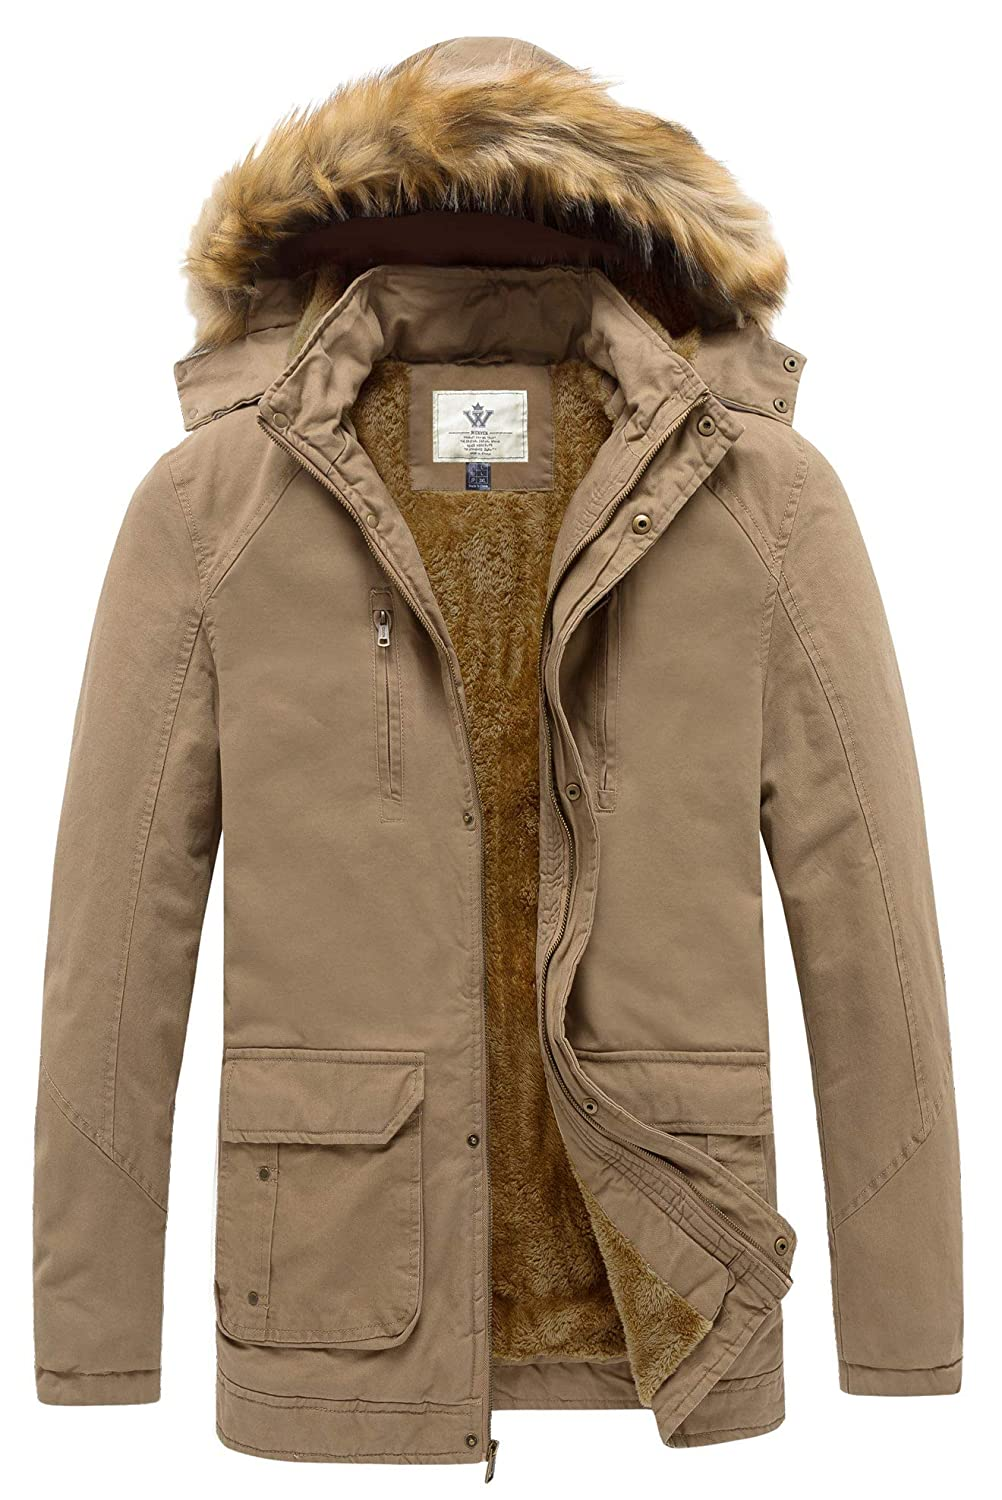 WenVen Mens Winter Warm Hooded Casual Jackets and Coats